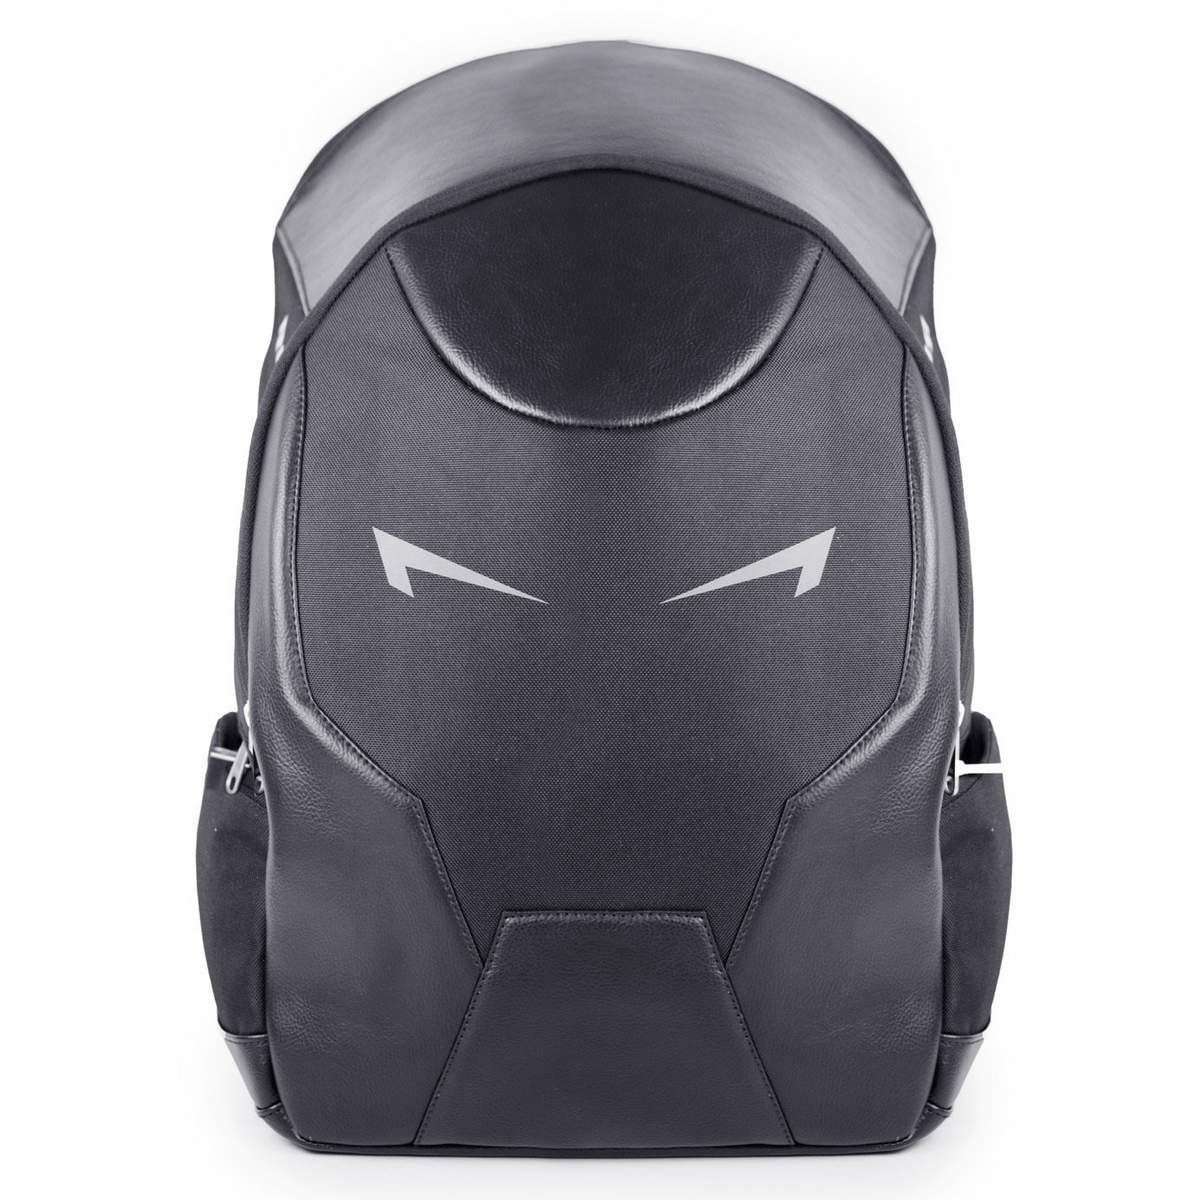 Road Gods The Rudra Mighty Laptop Backpack